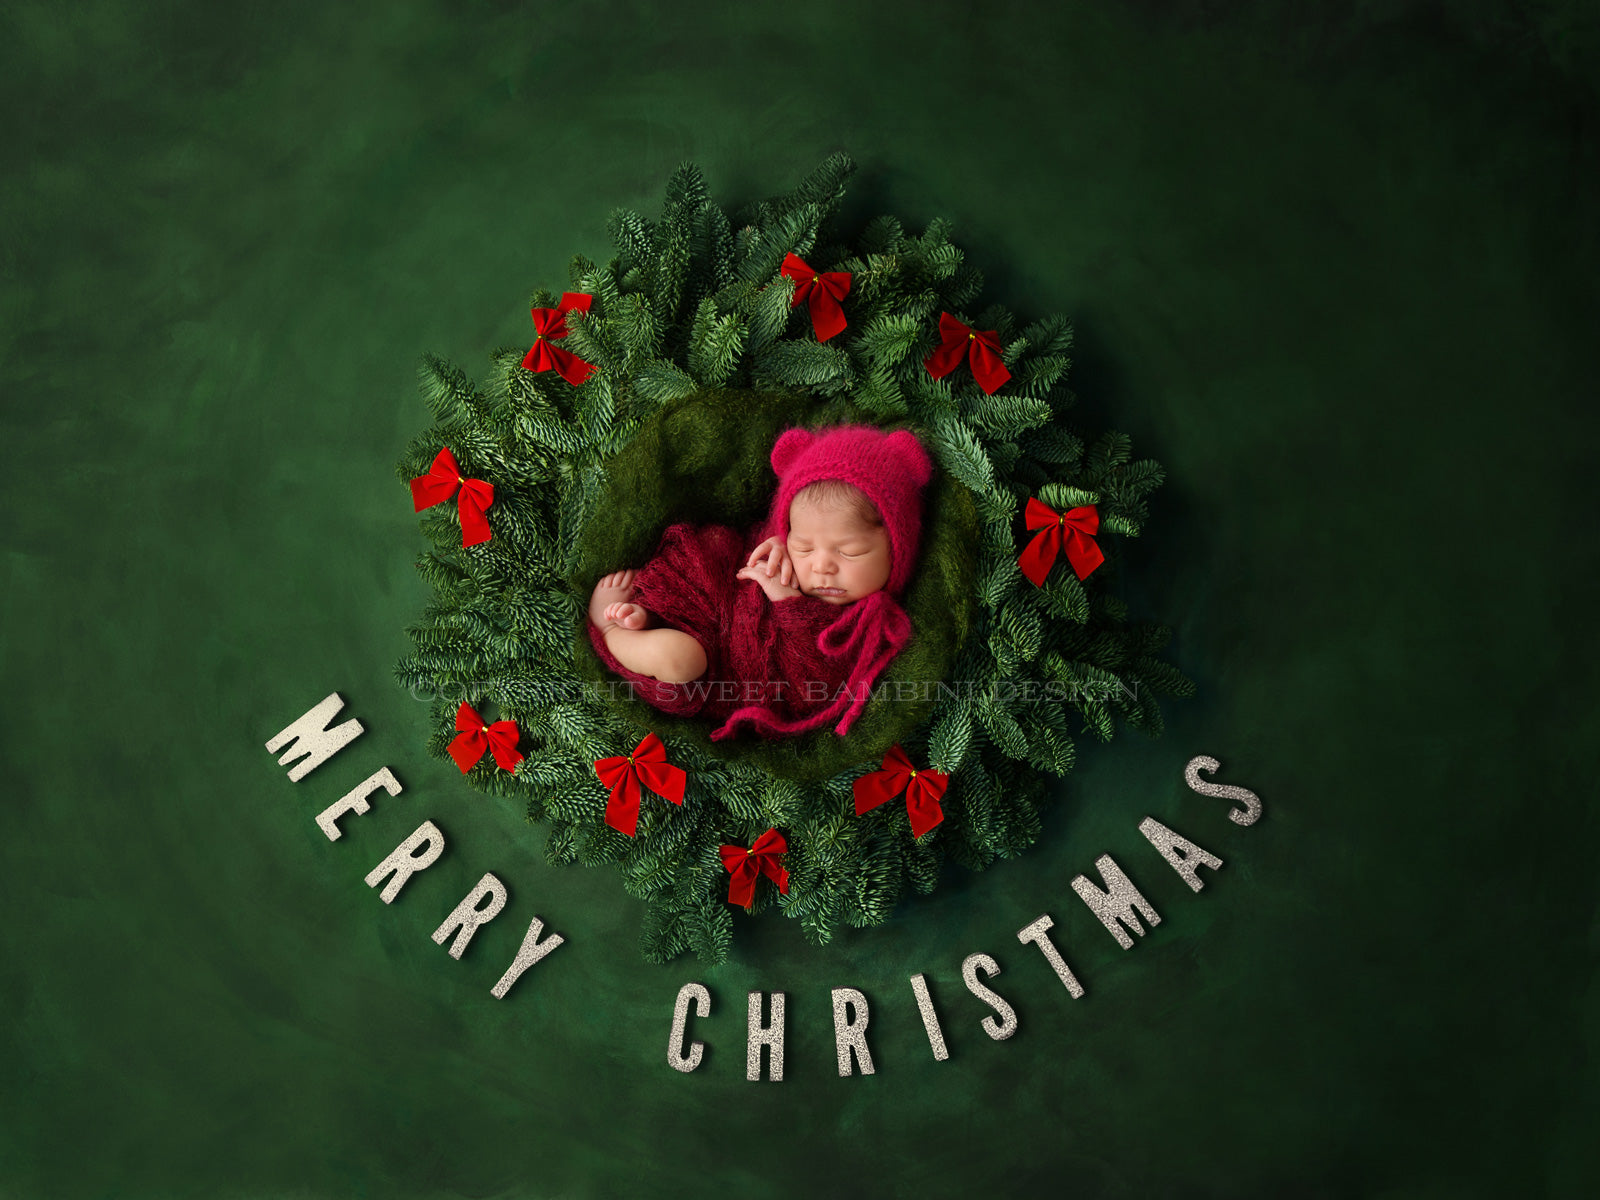 Newborn Christmas Pictures.Christmas Digital Backdrop For Newborn Boys Or Girls Merry Christmas Fresh Wreath With Red Bows Sweet Bambini Design